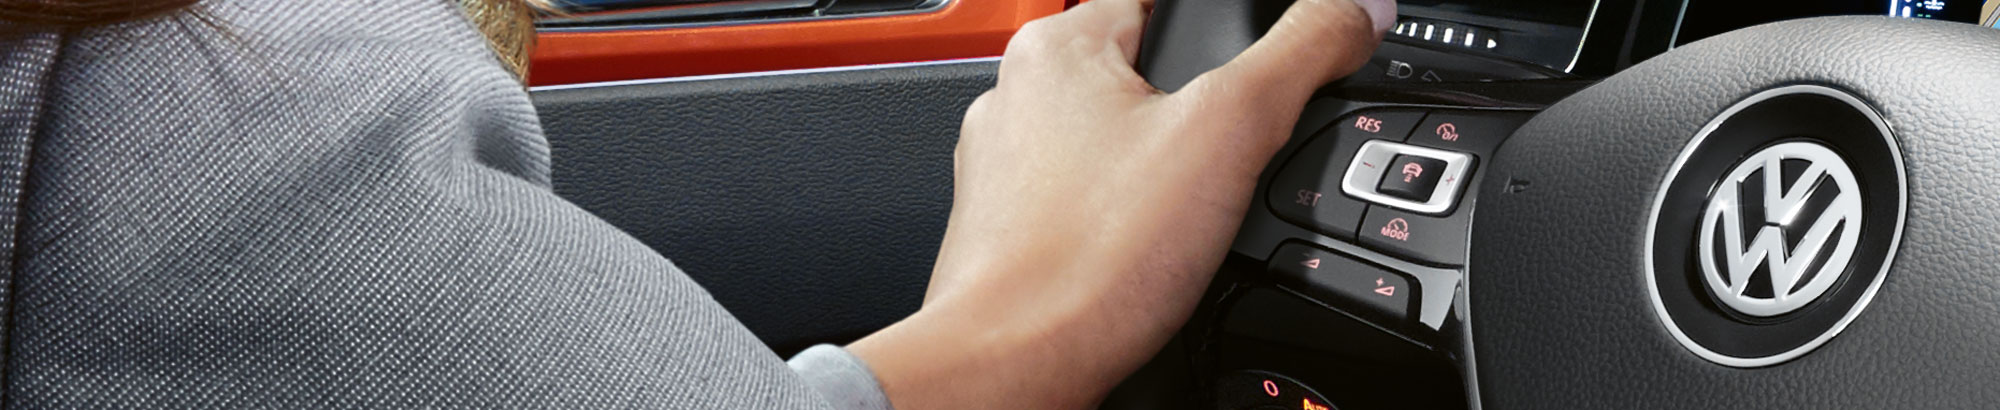 Hand resting on a VW steering wheel console